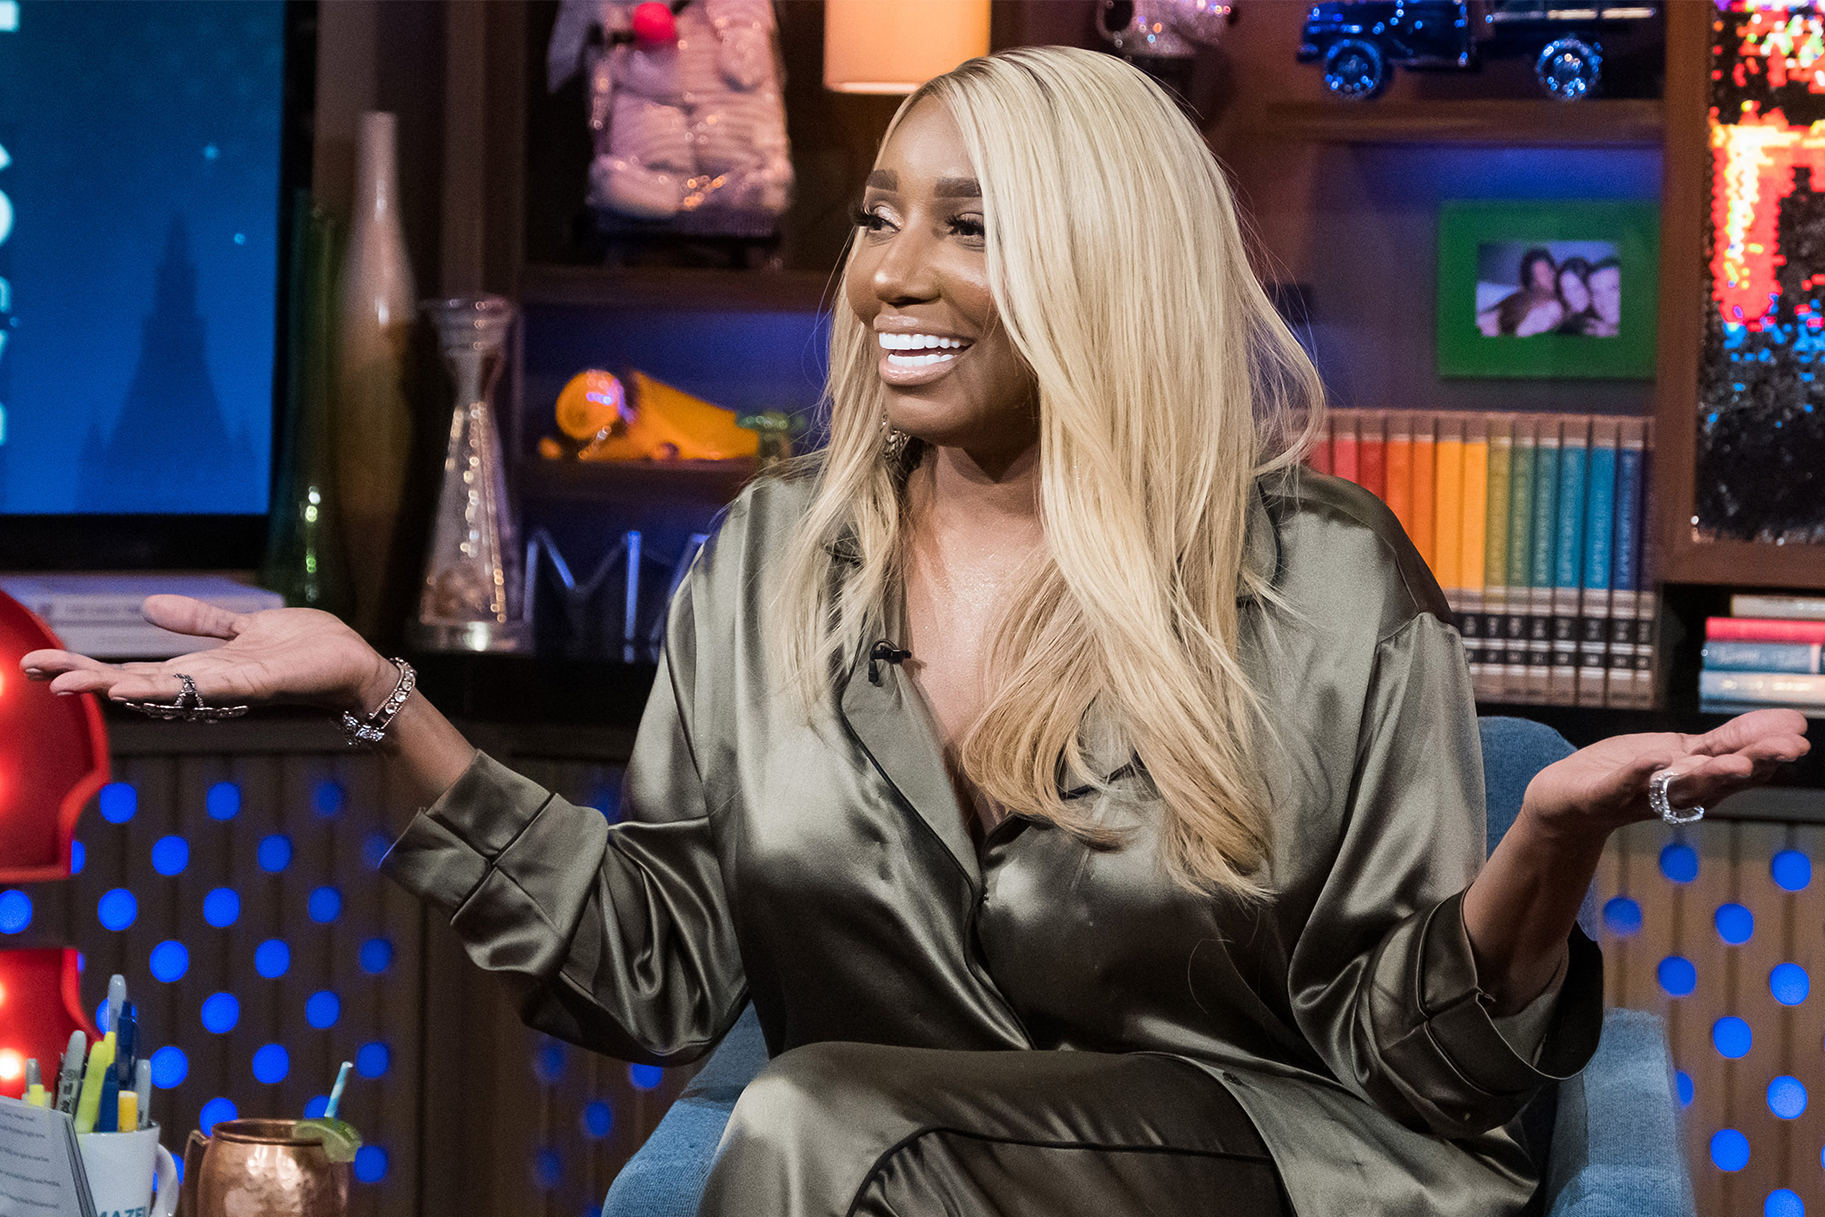 nene-leakes-revealed-a-surprise-for-her-fans-check-out-her-new-show